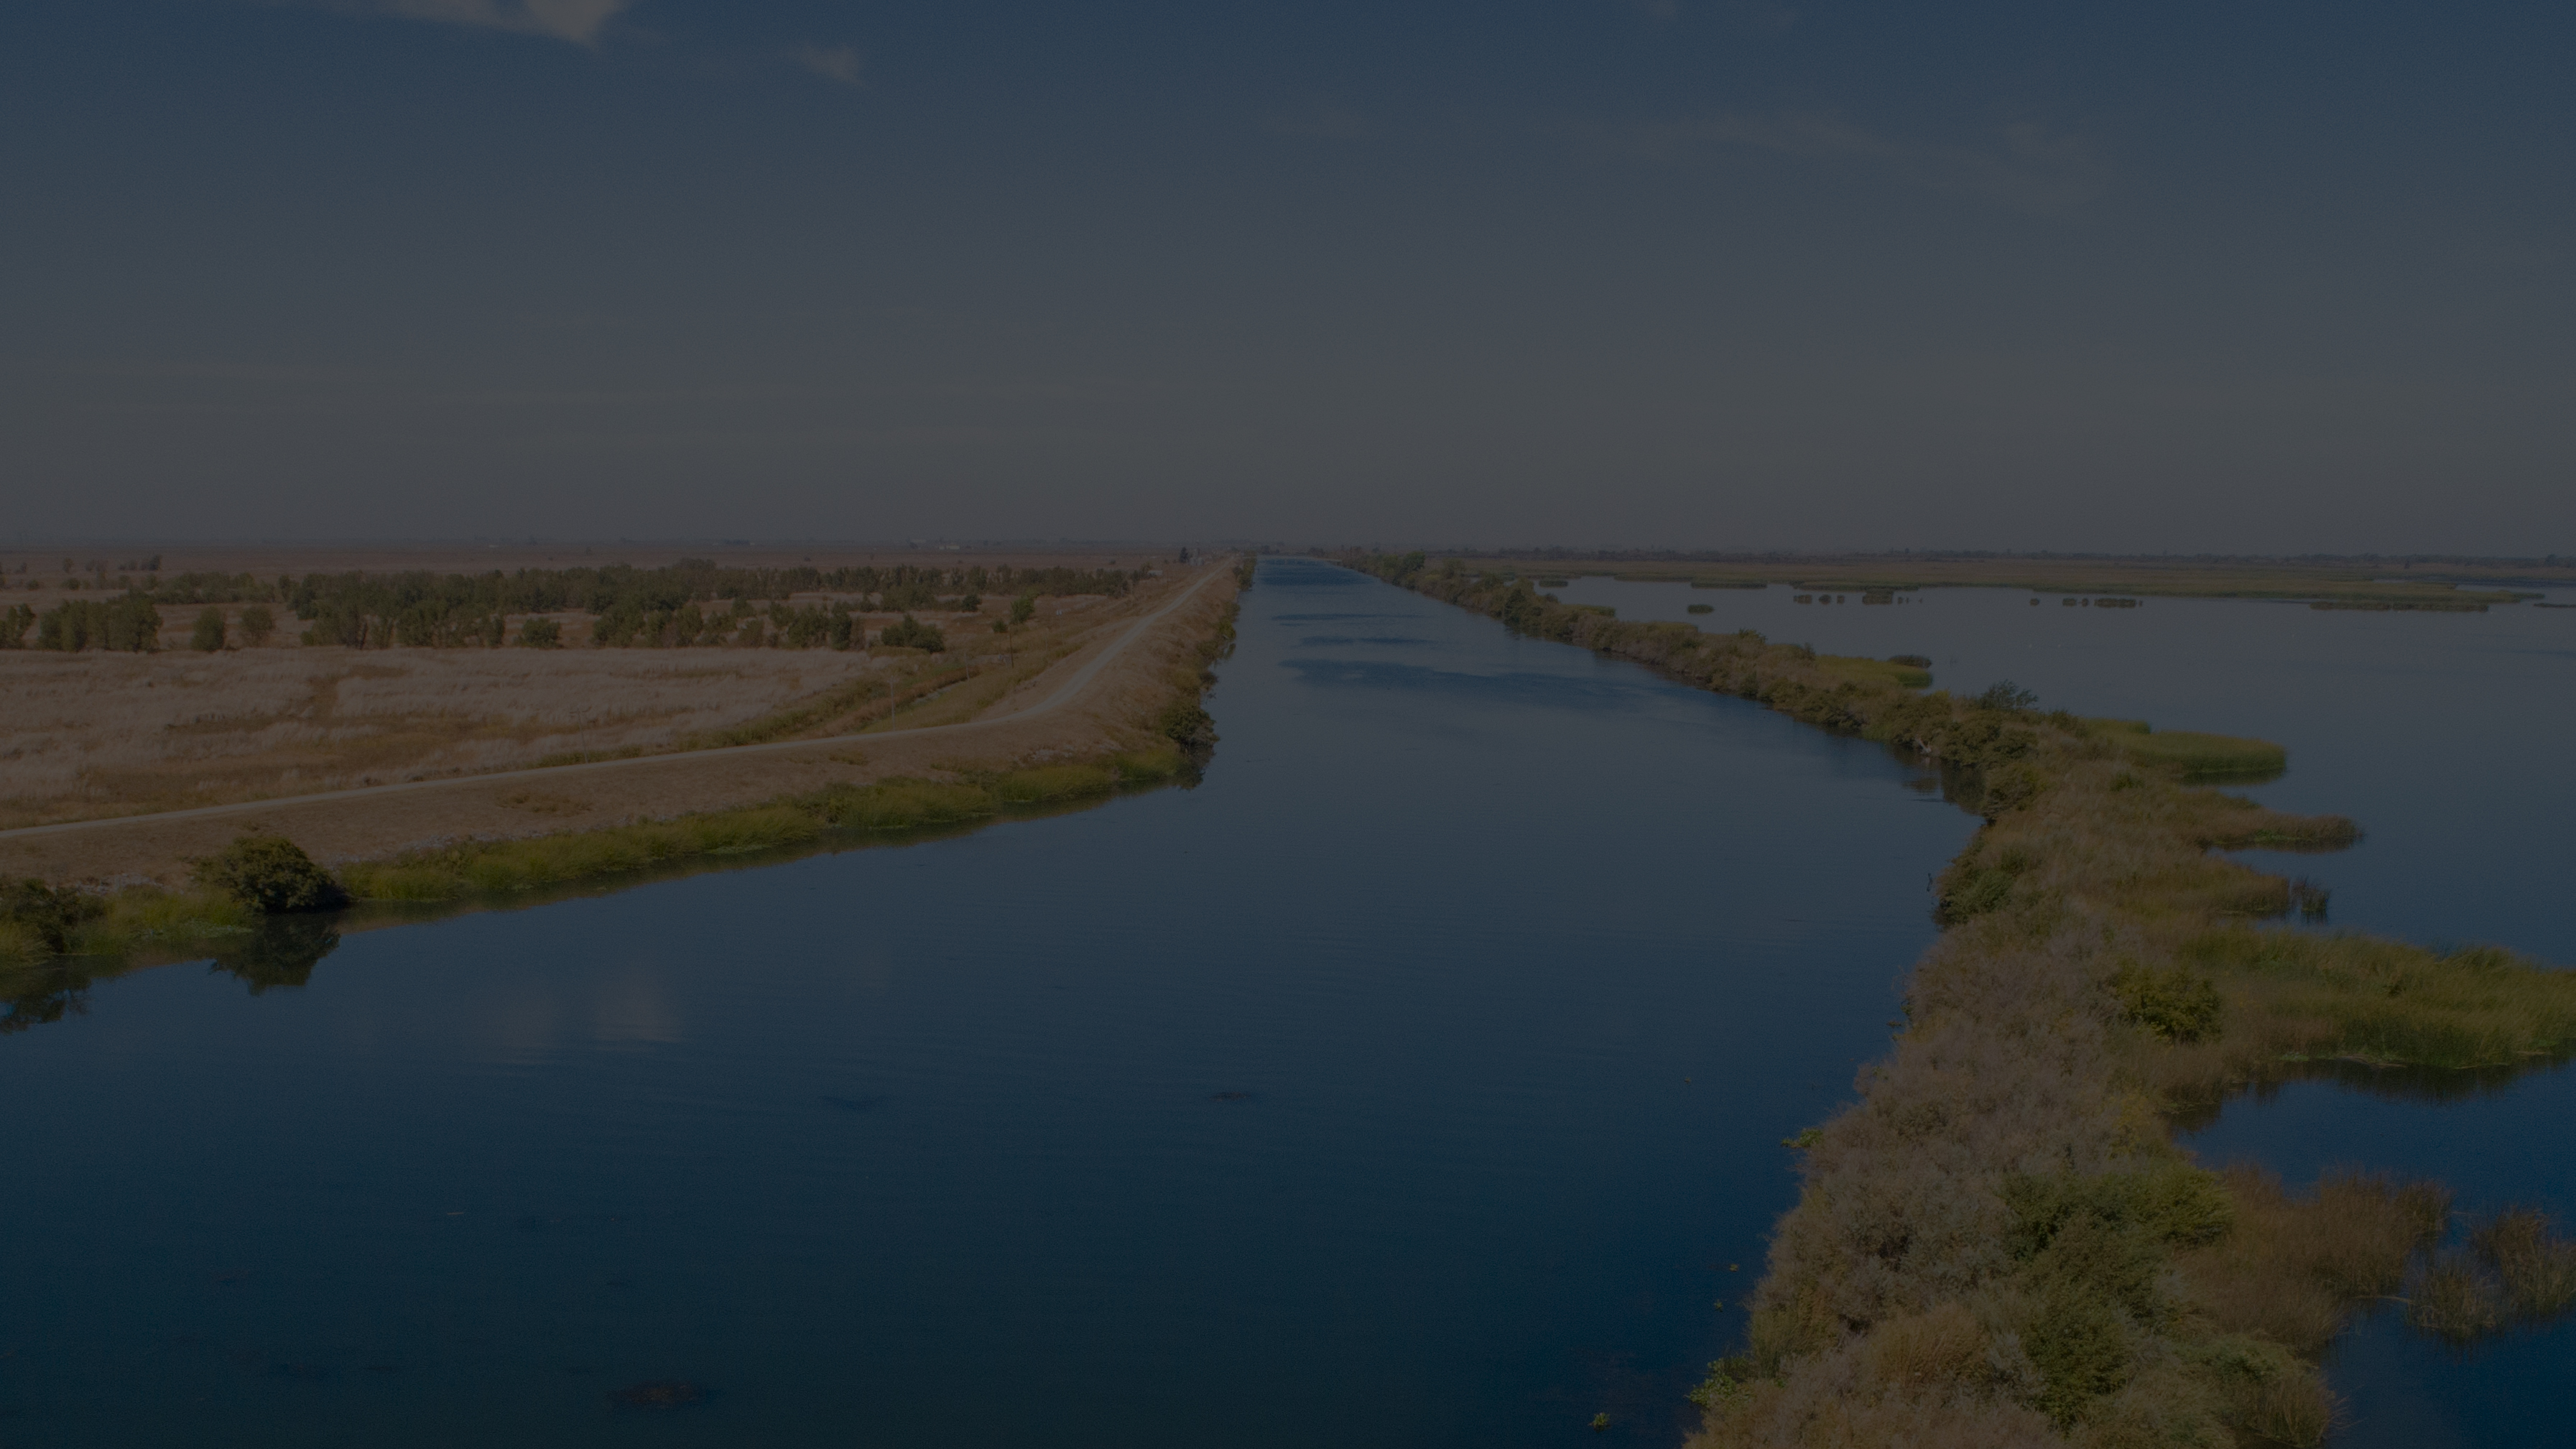 Tule grows in the habitat surrounding the future location of the Lookout Slough Tidal Restoration Project in the Sacramento-San Joaquin Delta.